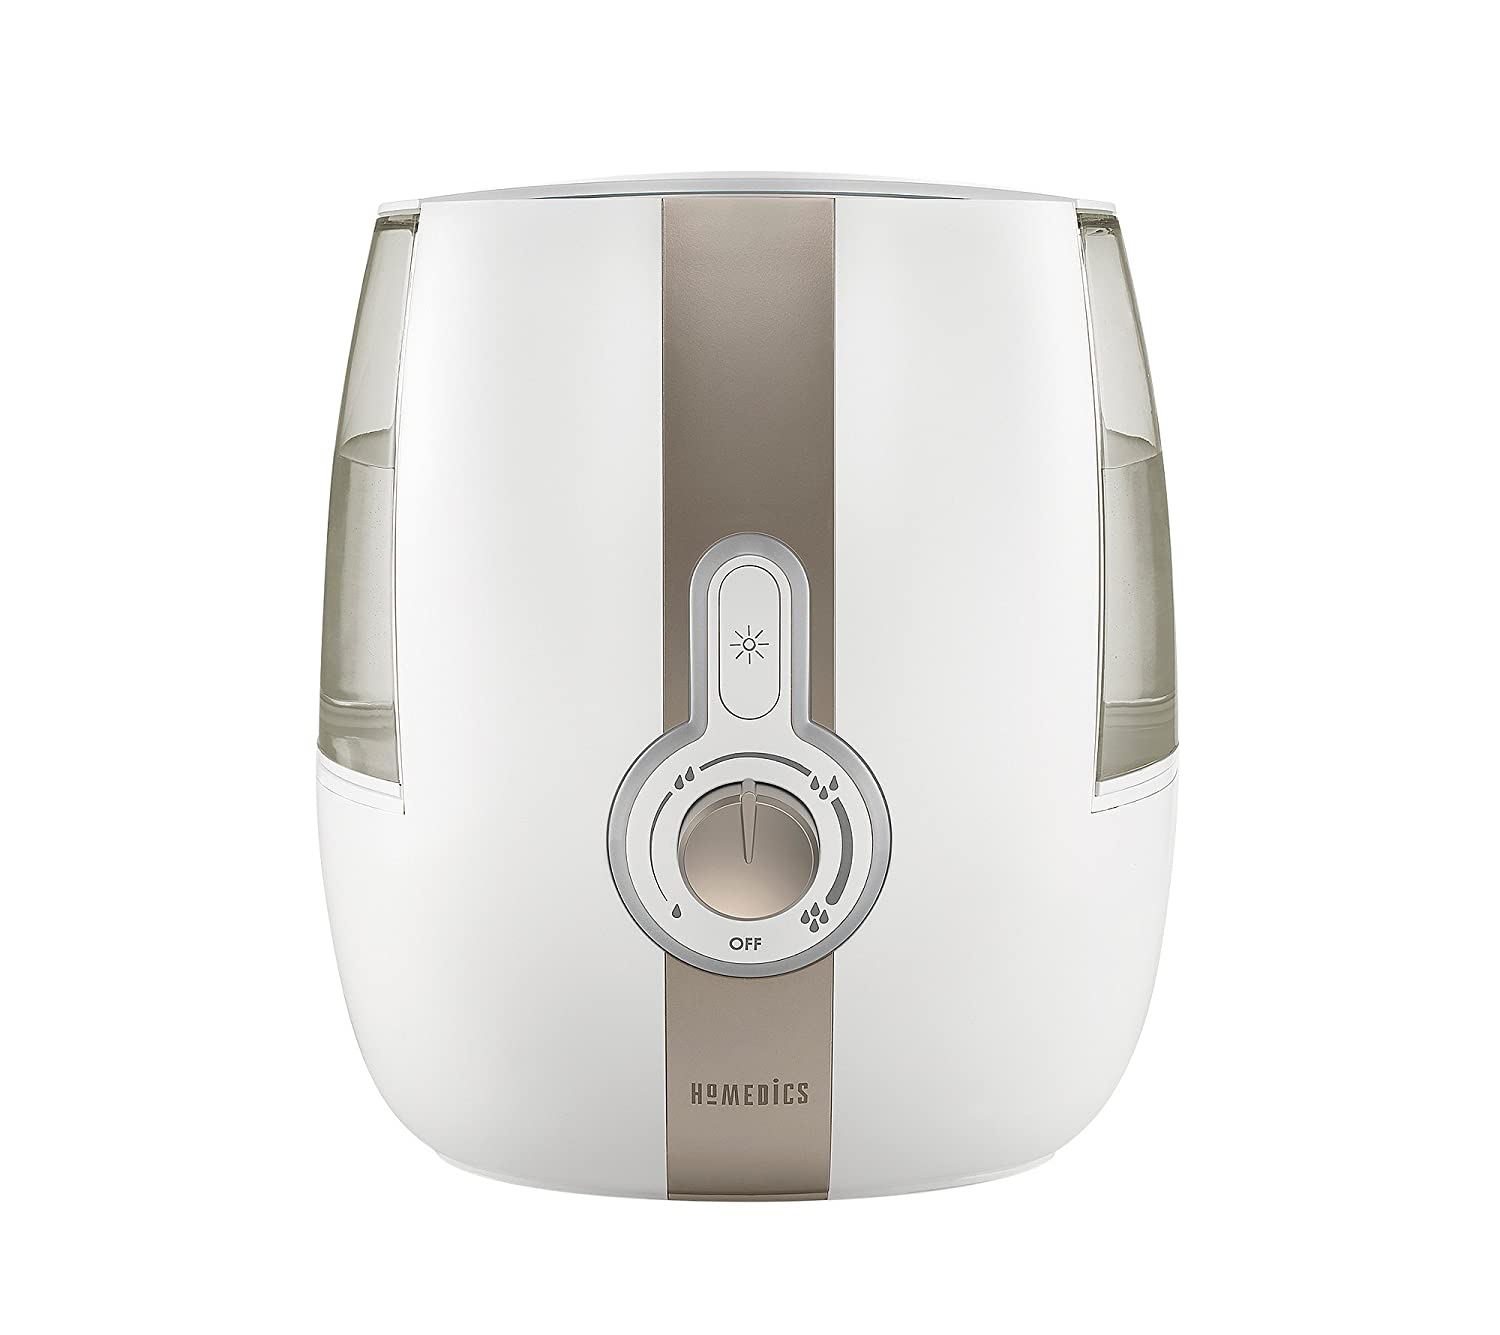 【おすすめ】 Homedics UHE-CM65 UHE-CM65 Cool Mist Ultrasonic Humidifier [並行輸入品] [並行輸入品] Ultrasonic B01N4N07N7, 岐阜県池田町:cdf4ed6e --- ciadaterra.com